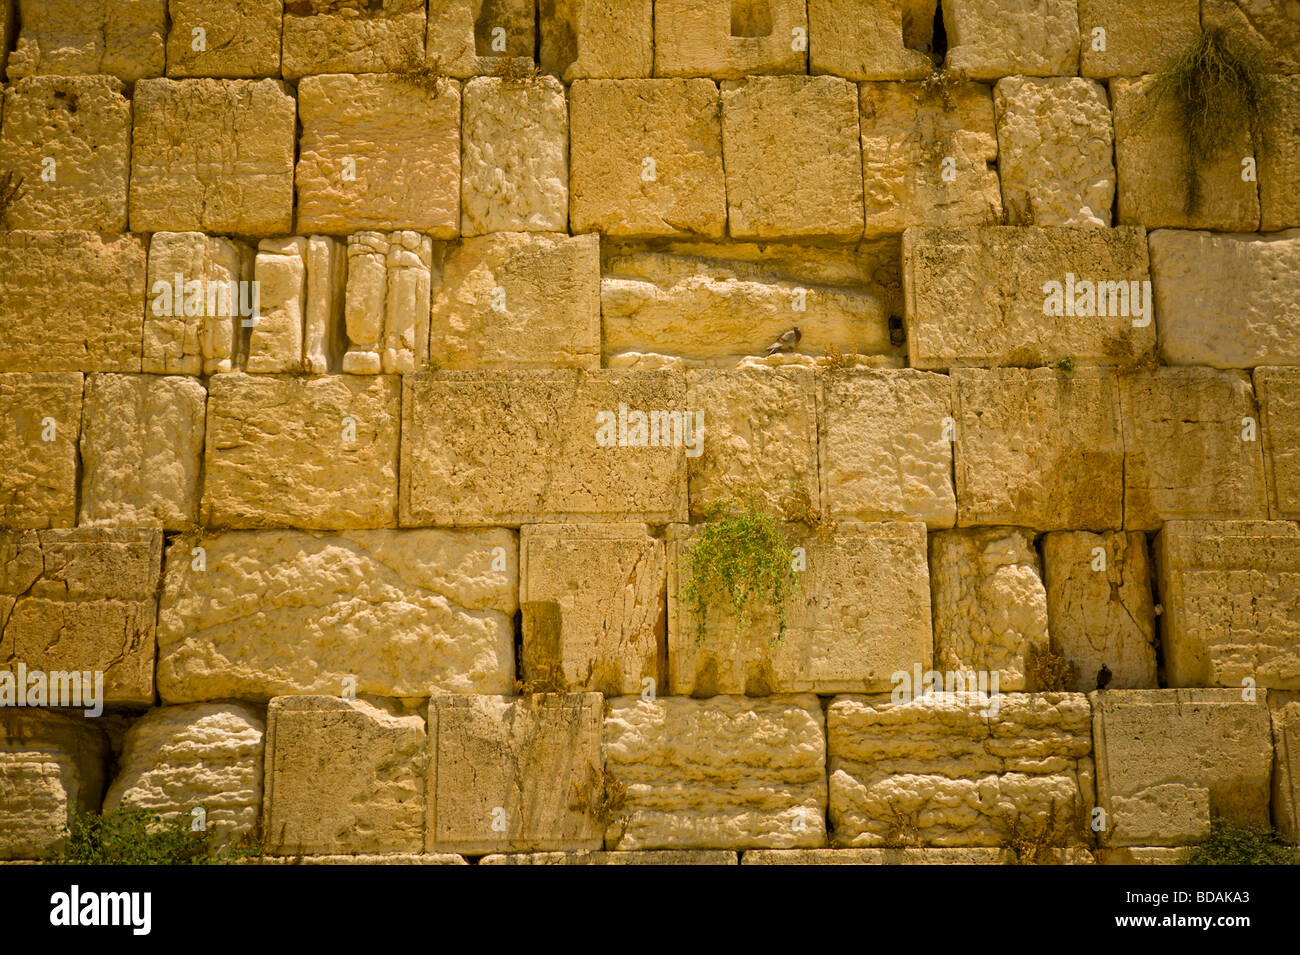 Closeup detail of the wailing wall in Jeruslaem - Stock Image